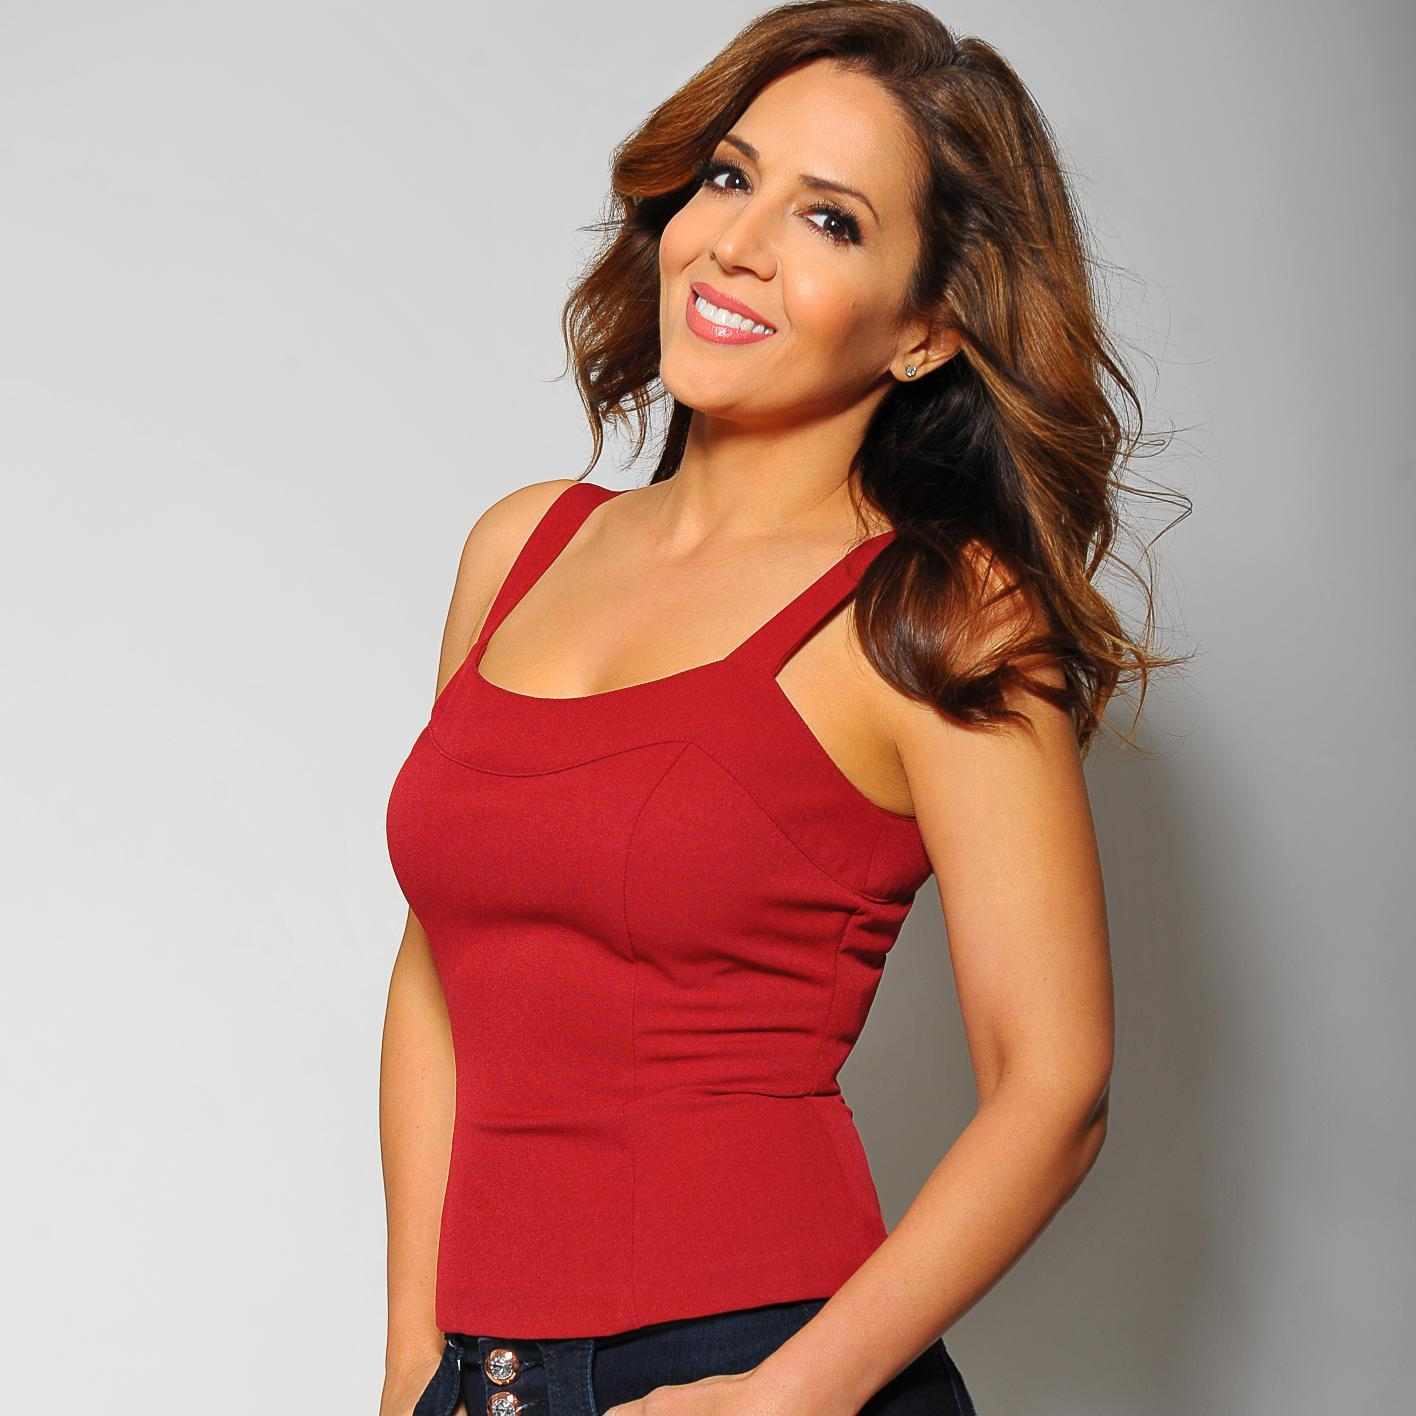 Image result for MARIA CANALS-BARRERA